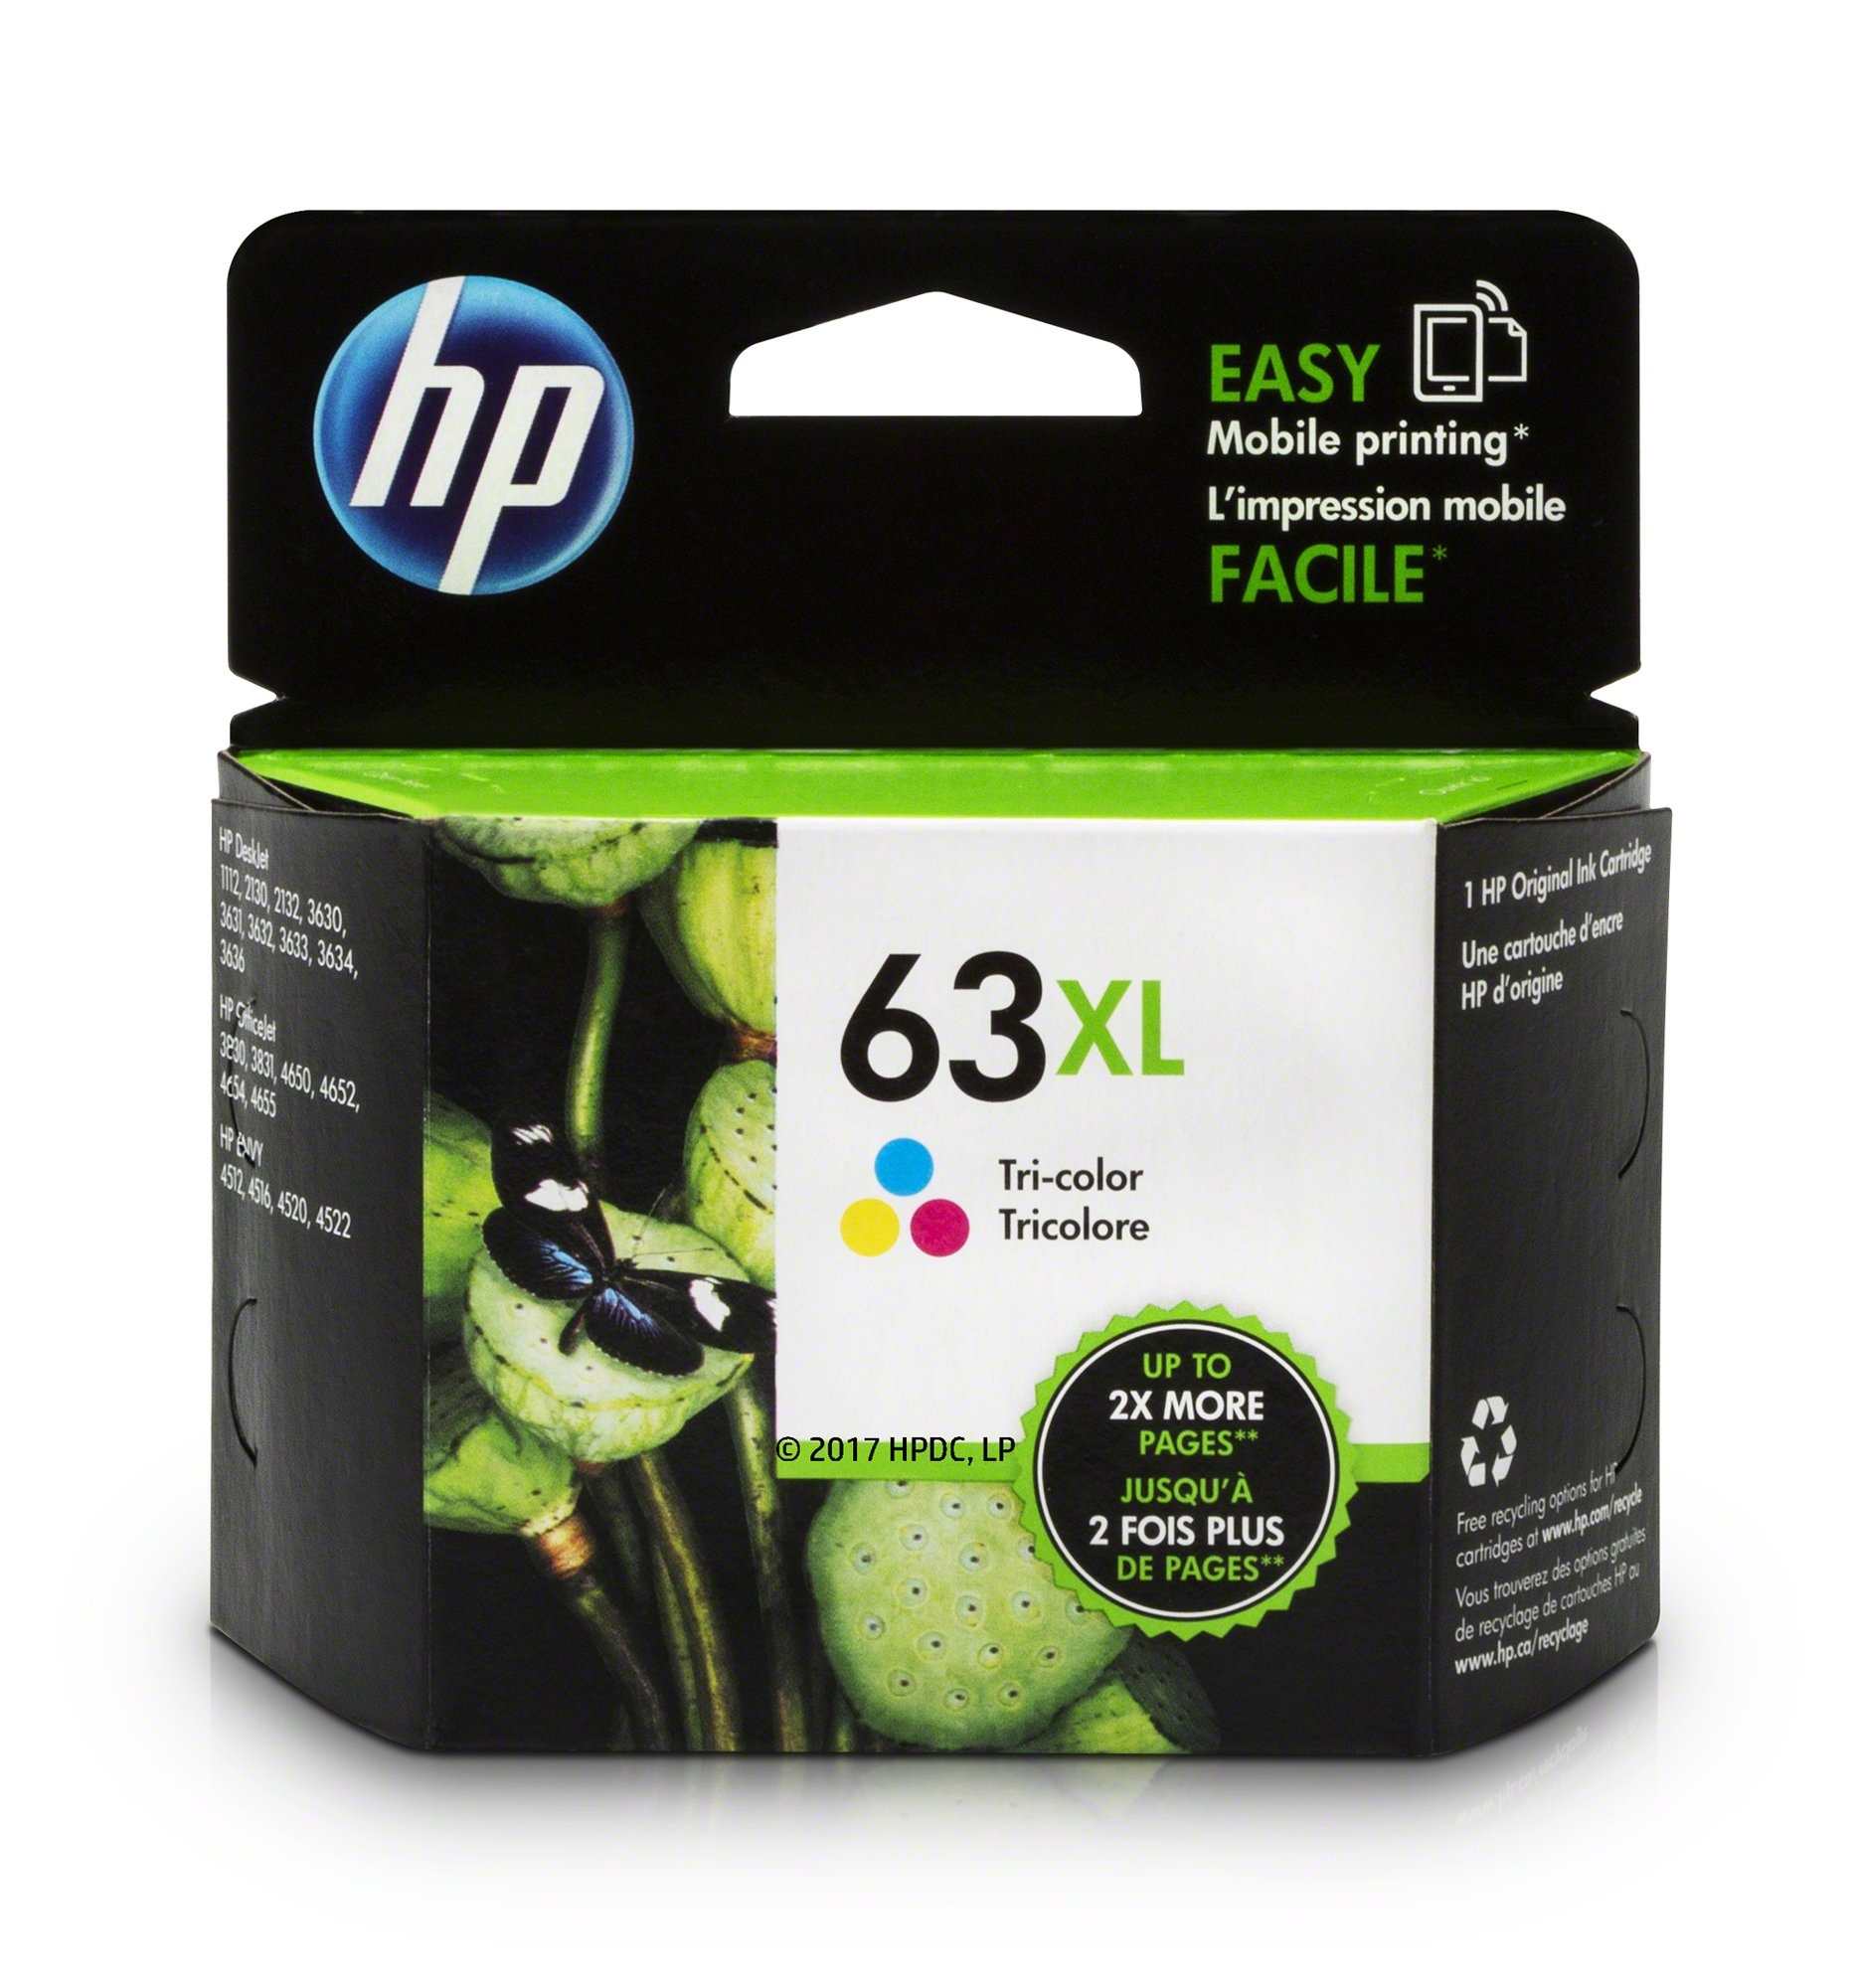 HP 63XL Tri-color High Yield Original Ink Cartridge (F6U63AN) for HP Deskjet 1112 2130 2132 3630 3632 3633 3634 3636 3637 HP ENVY 4512 4513 4520 4523 4524 HP Officejet 3830 3831 3833 4650 4652 4654 4655 by HP (Image #1)